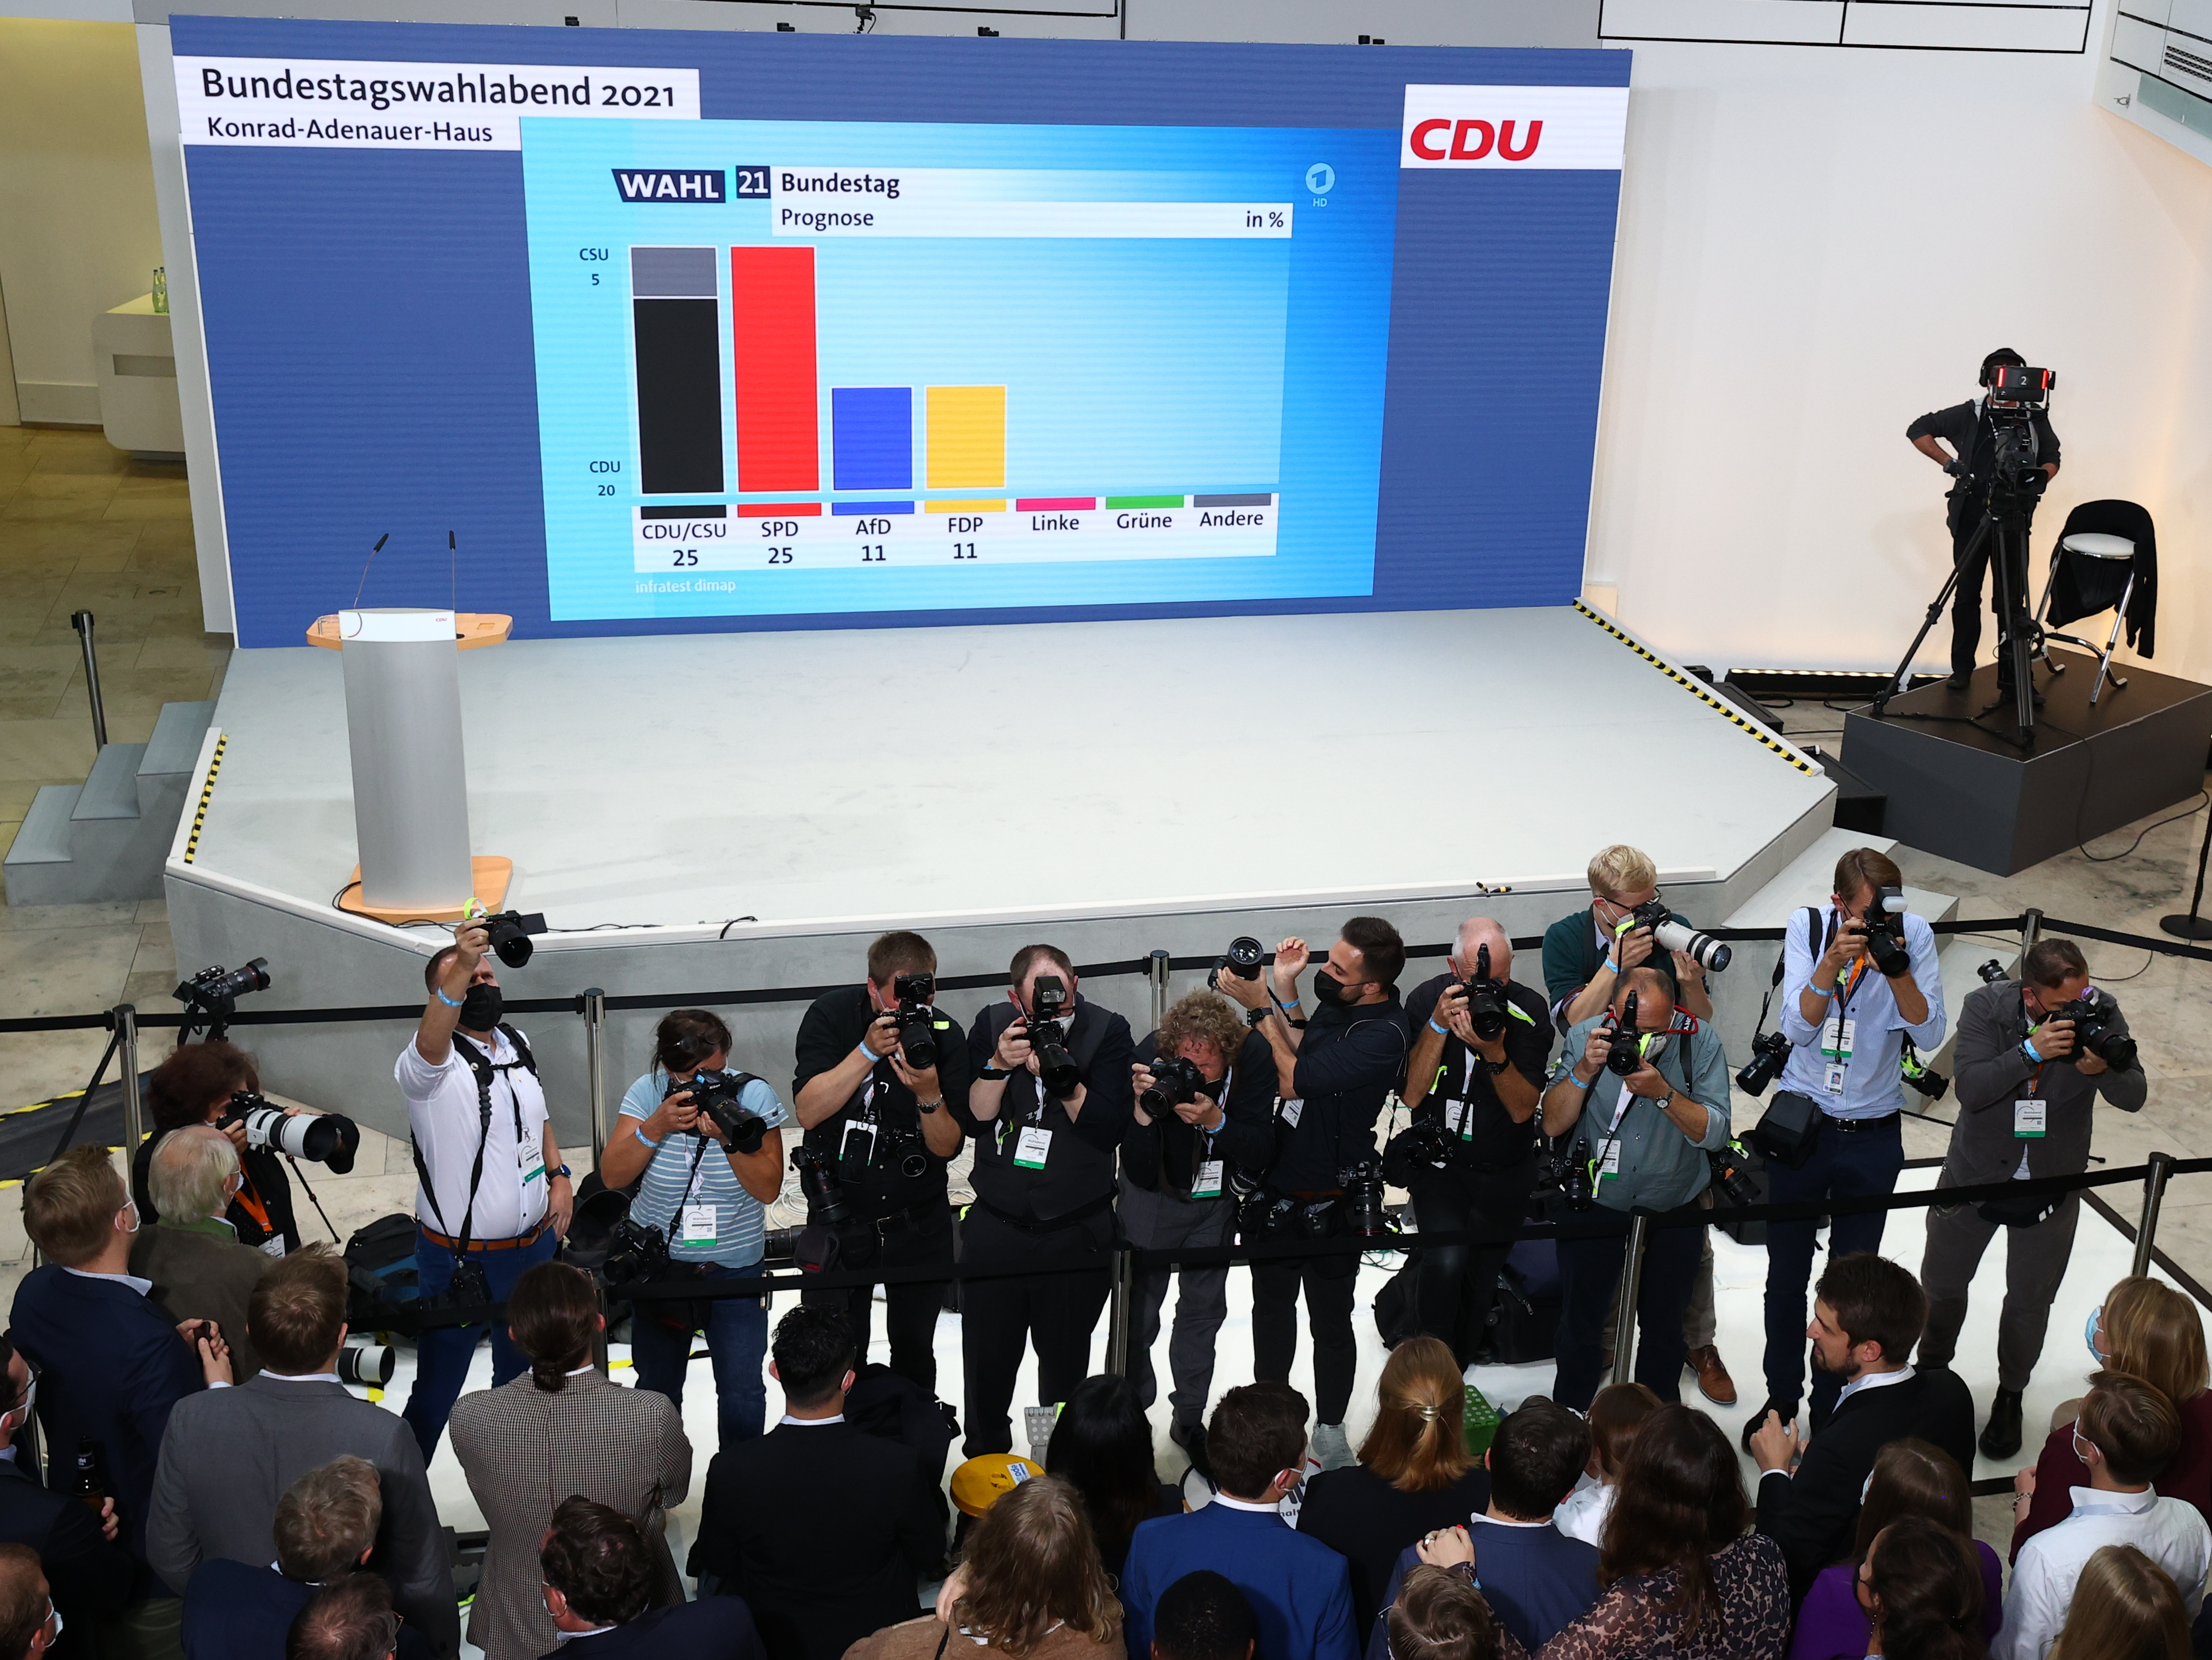 Christian Democratic Union (CDU) supporters react after first exit polls for the general elections in Berlin, Germany, September 26, 2021. REUTERS/Fabrizio Bensch